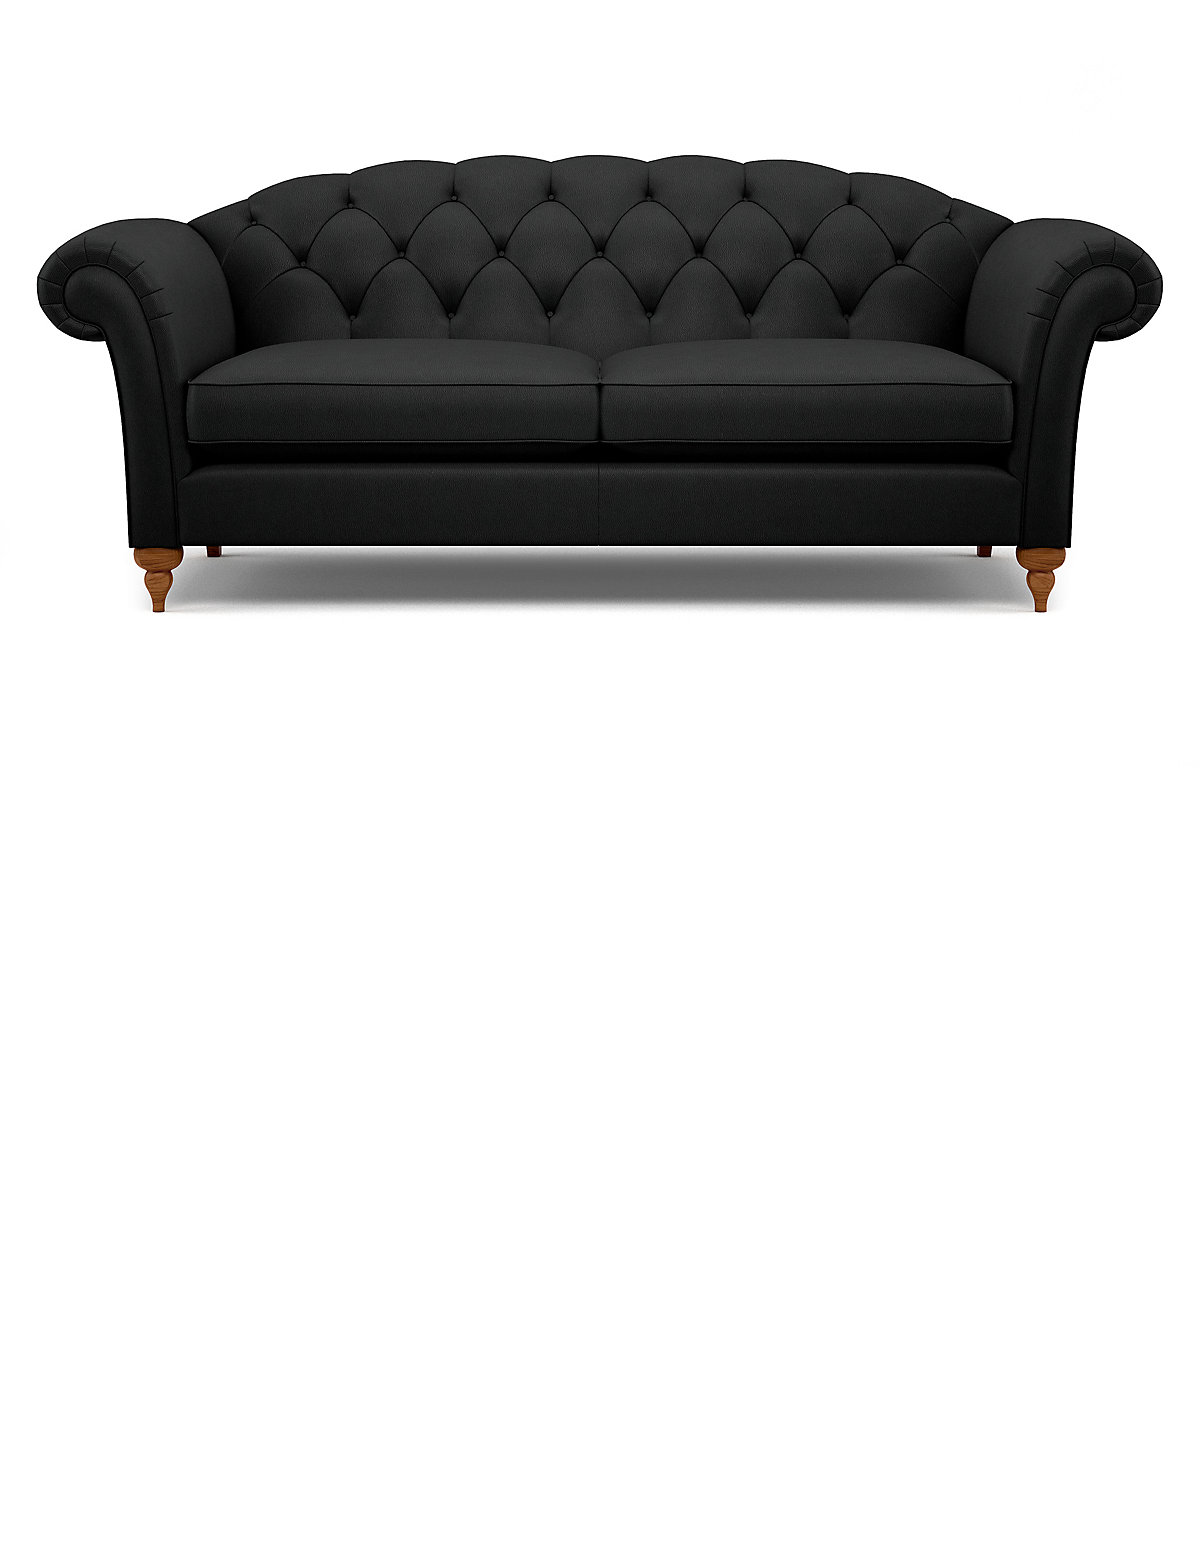 Staveley Large sofa at Marks and Spencer Online